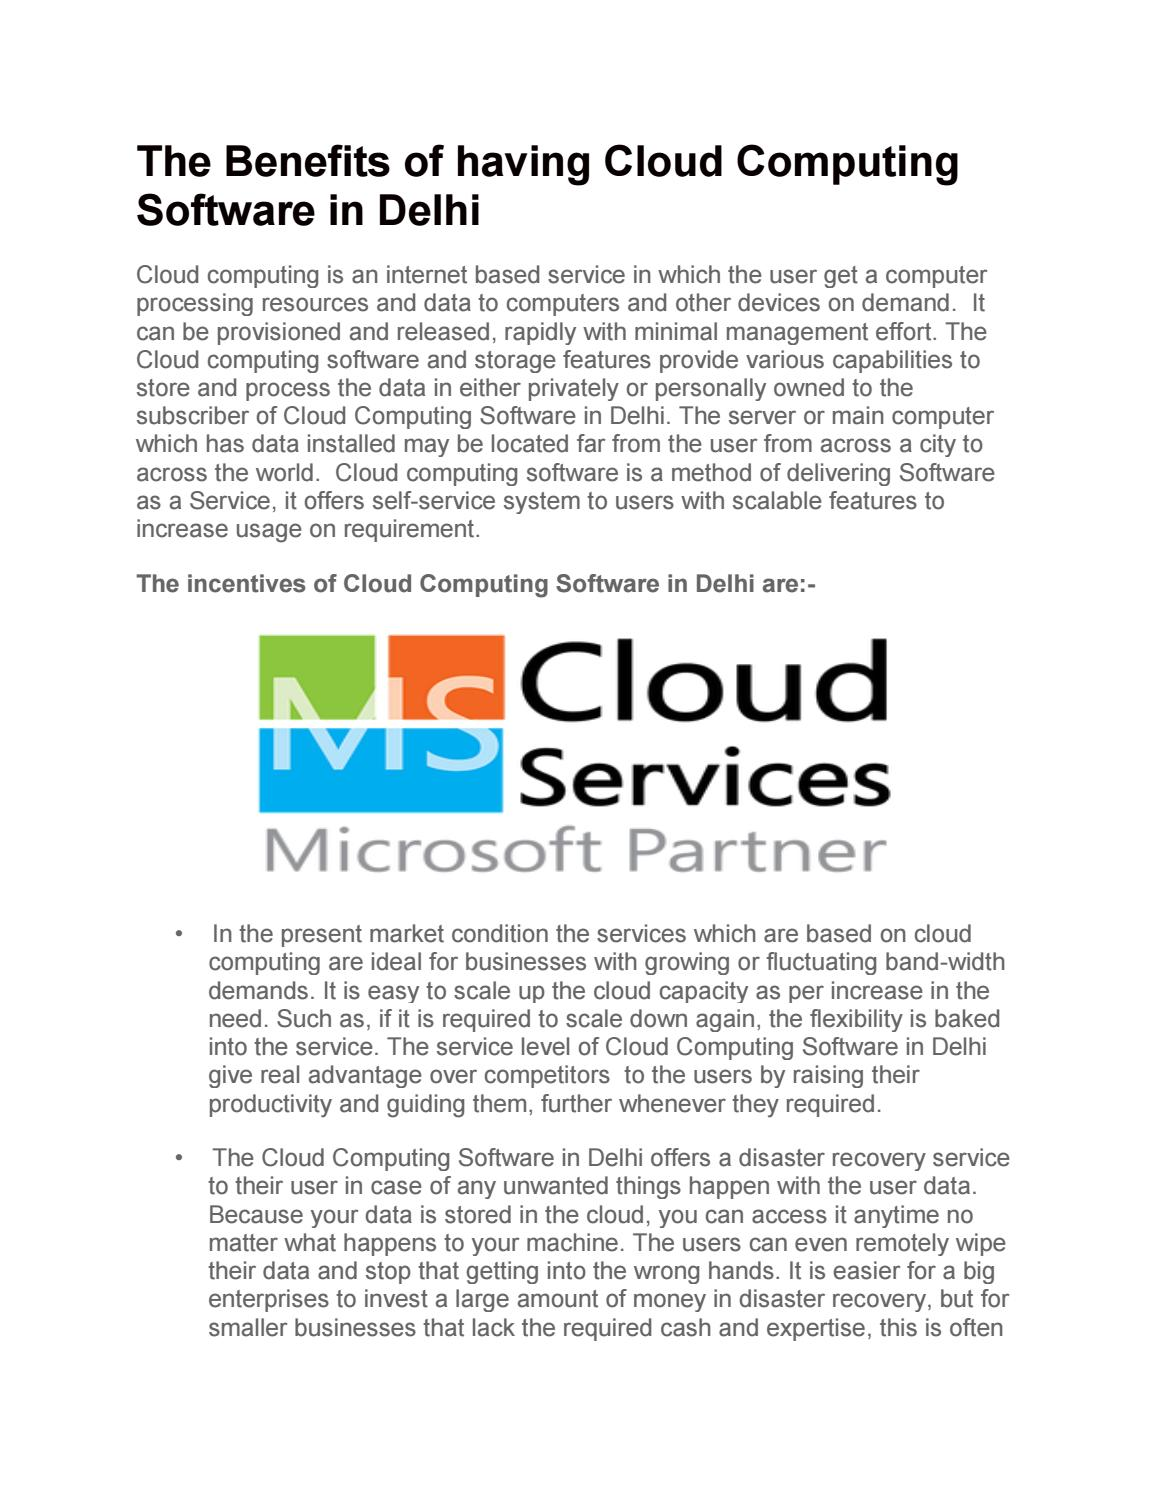 a history benefits and functions of cloud computing Cloud computing is shared pools of configurable computer system resources and higher-level services that can be rapidly provisioned with minimal management effort, often over the internet.